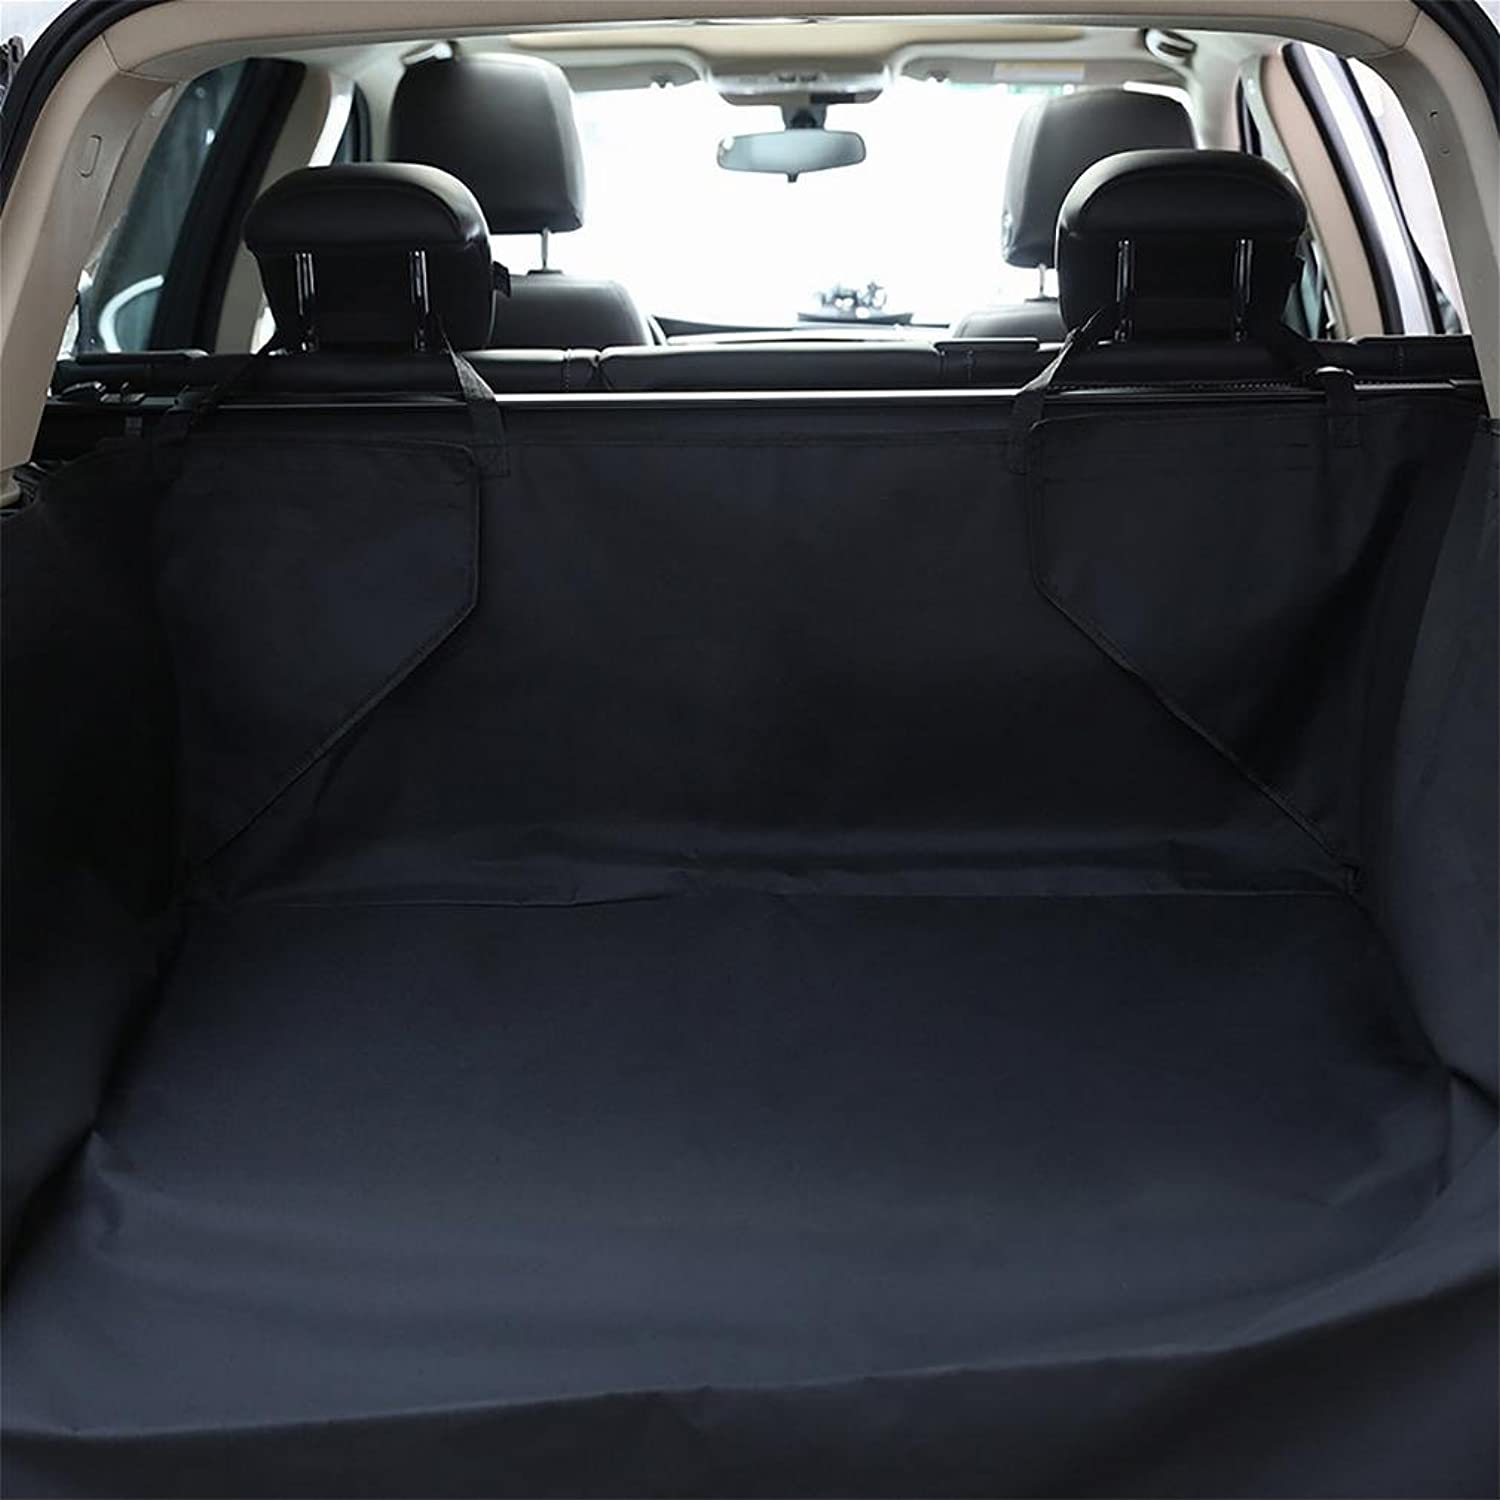 LPYCar Boot Liner for Pet Seat Cover